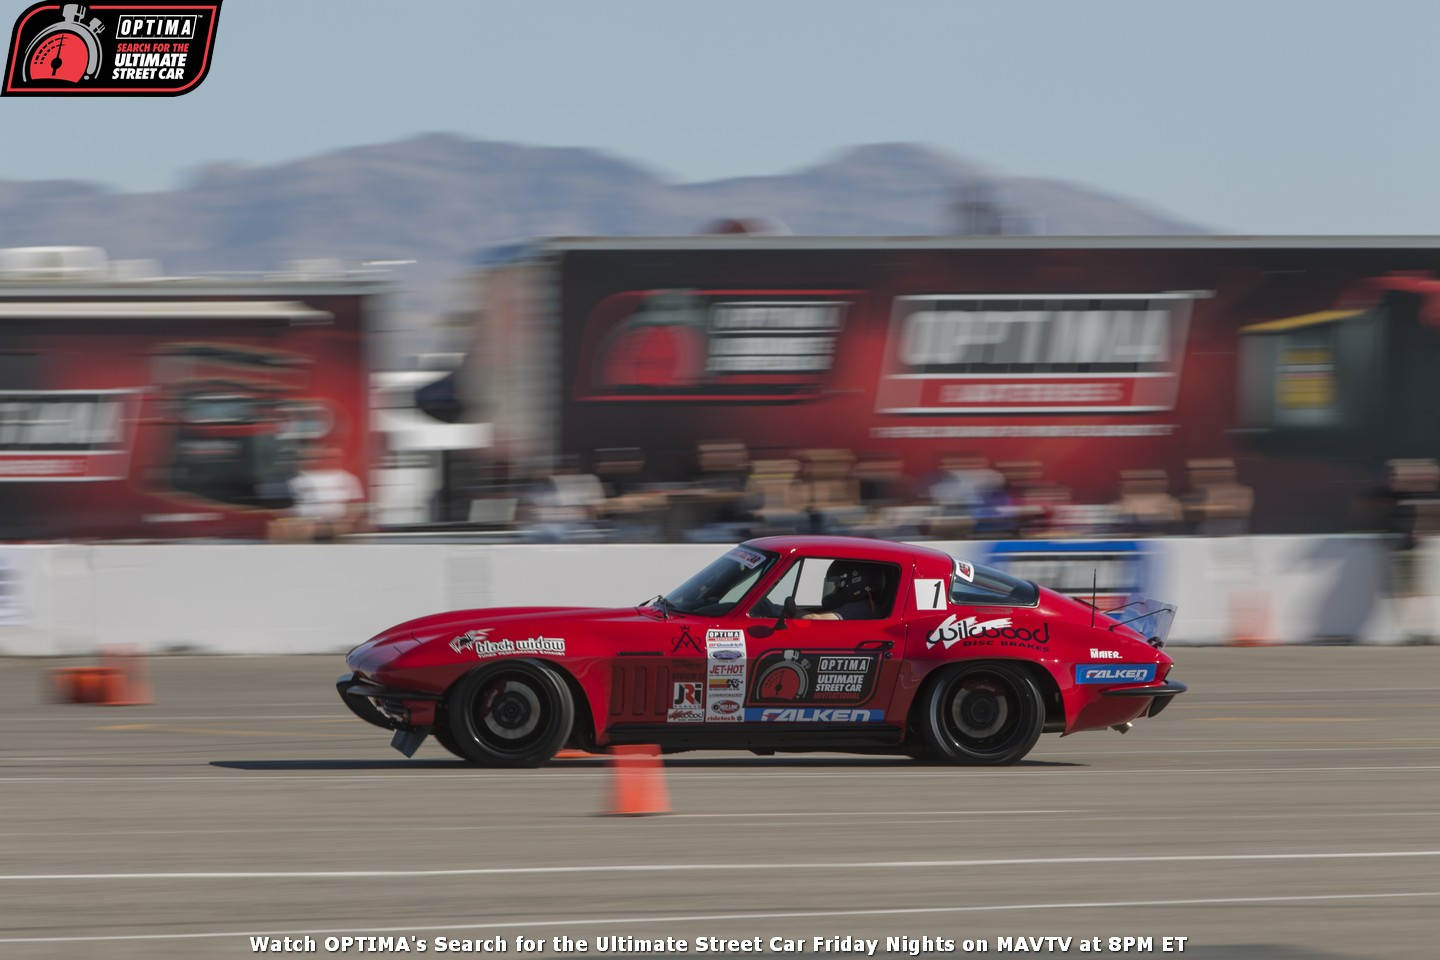 p-Brian-Hobaugh-1965-Chevrolet-Corvette-RideTech-Autocross-2014-OPTIMA-Ultimate-Street-Car-Invitational_25.jpg